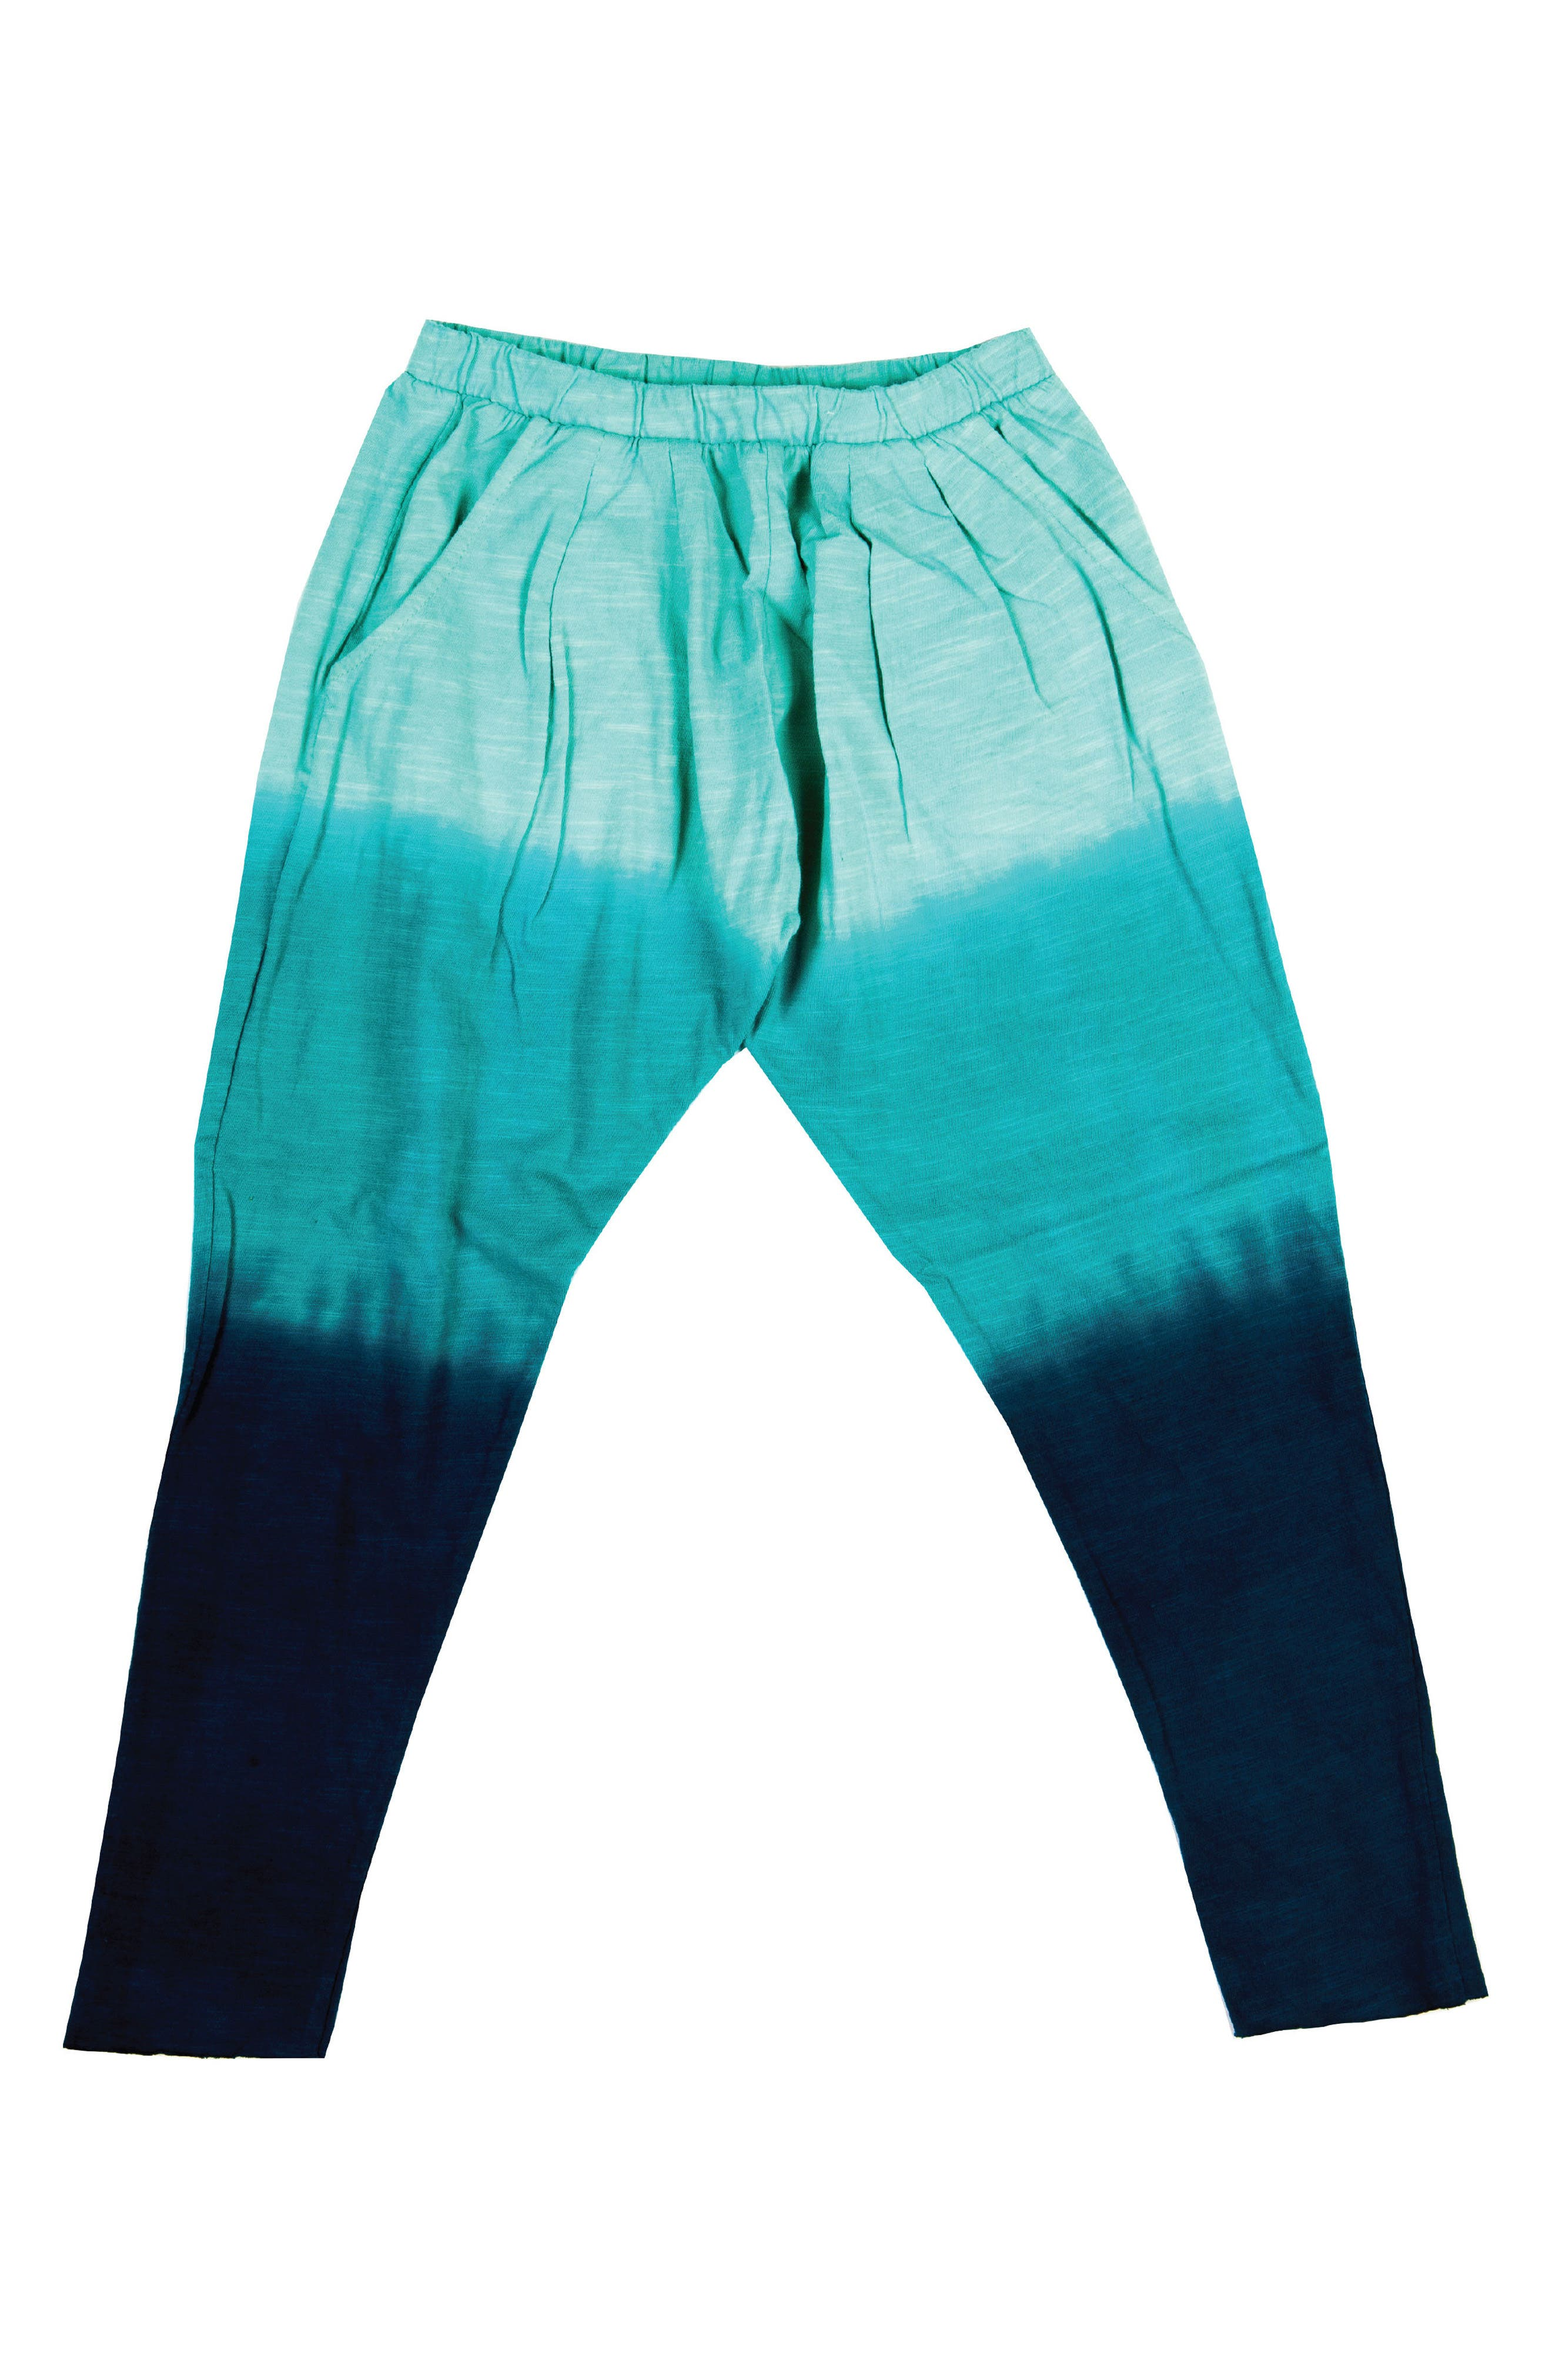 Alternate Image 1 Selected - BOWIE X JAMES Dip Dye Harem Pants (Toddler Girls, Little Girls & Big Girls)